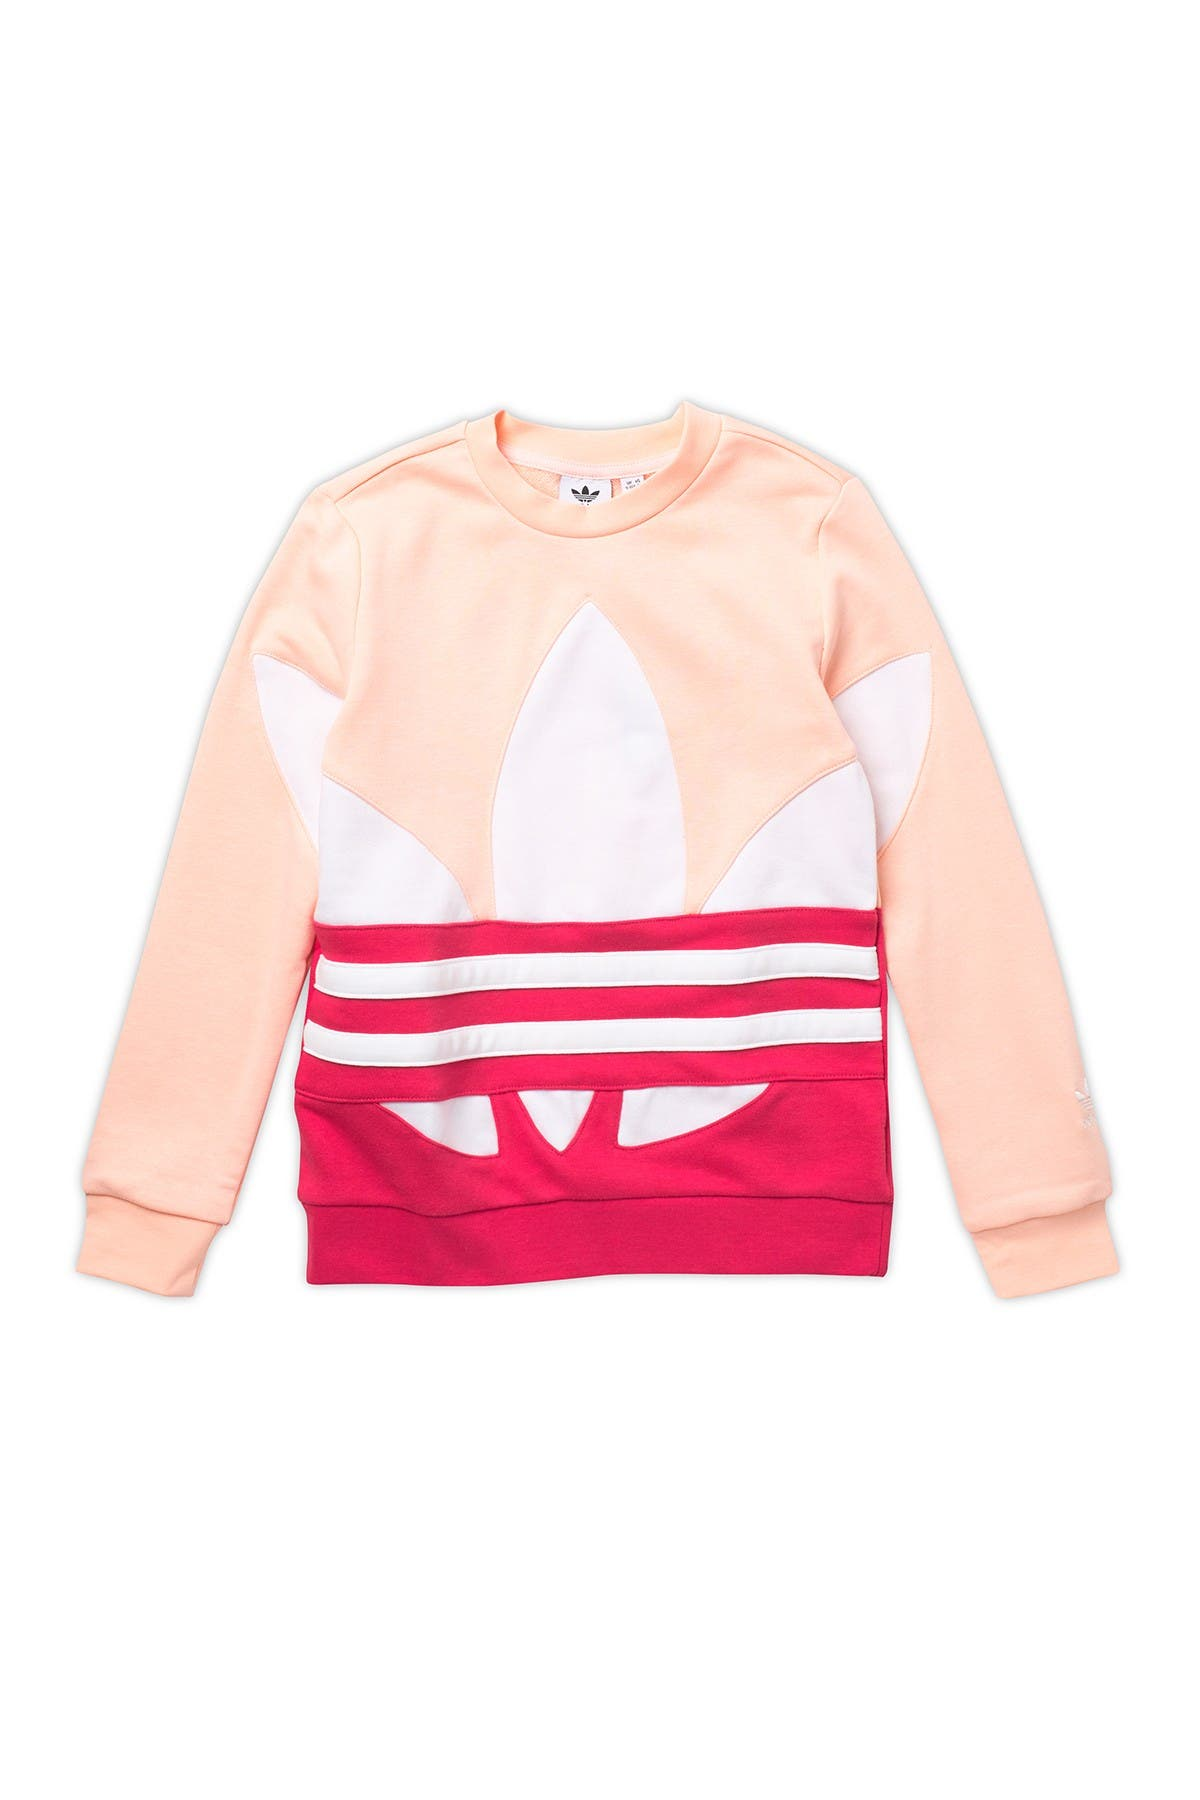 Image of ADIDAS ORIGINALS Big Trefoil Colorblock Pullover